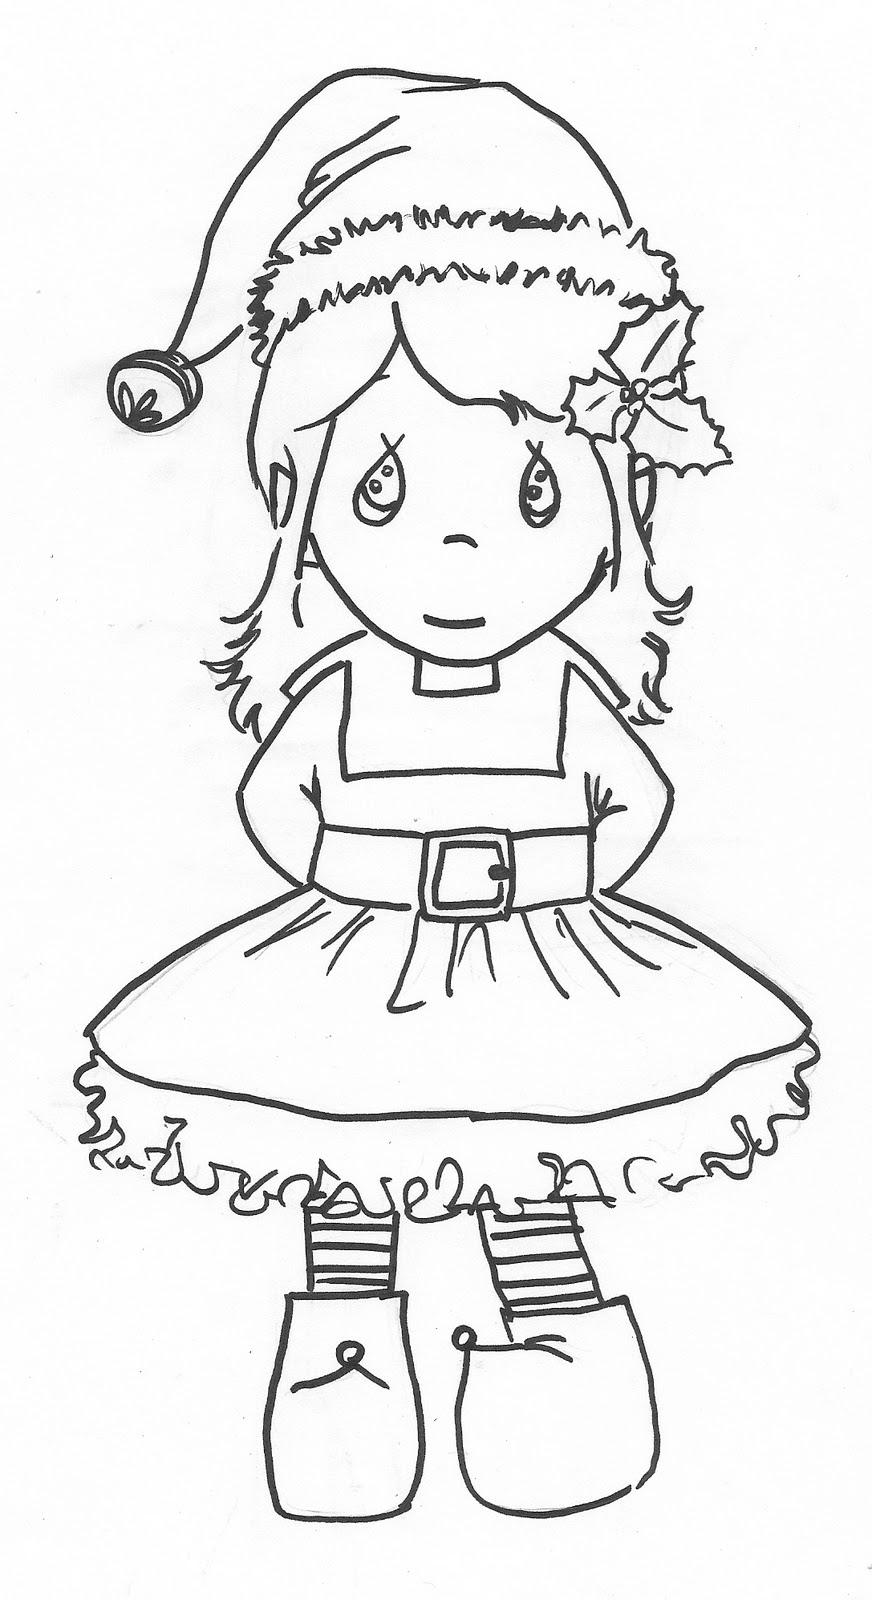 elf christmas coloring pages free printable elf coloring pages for kids cool2bkids elf christmas coloring pages